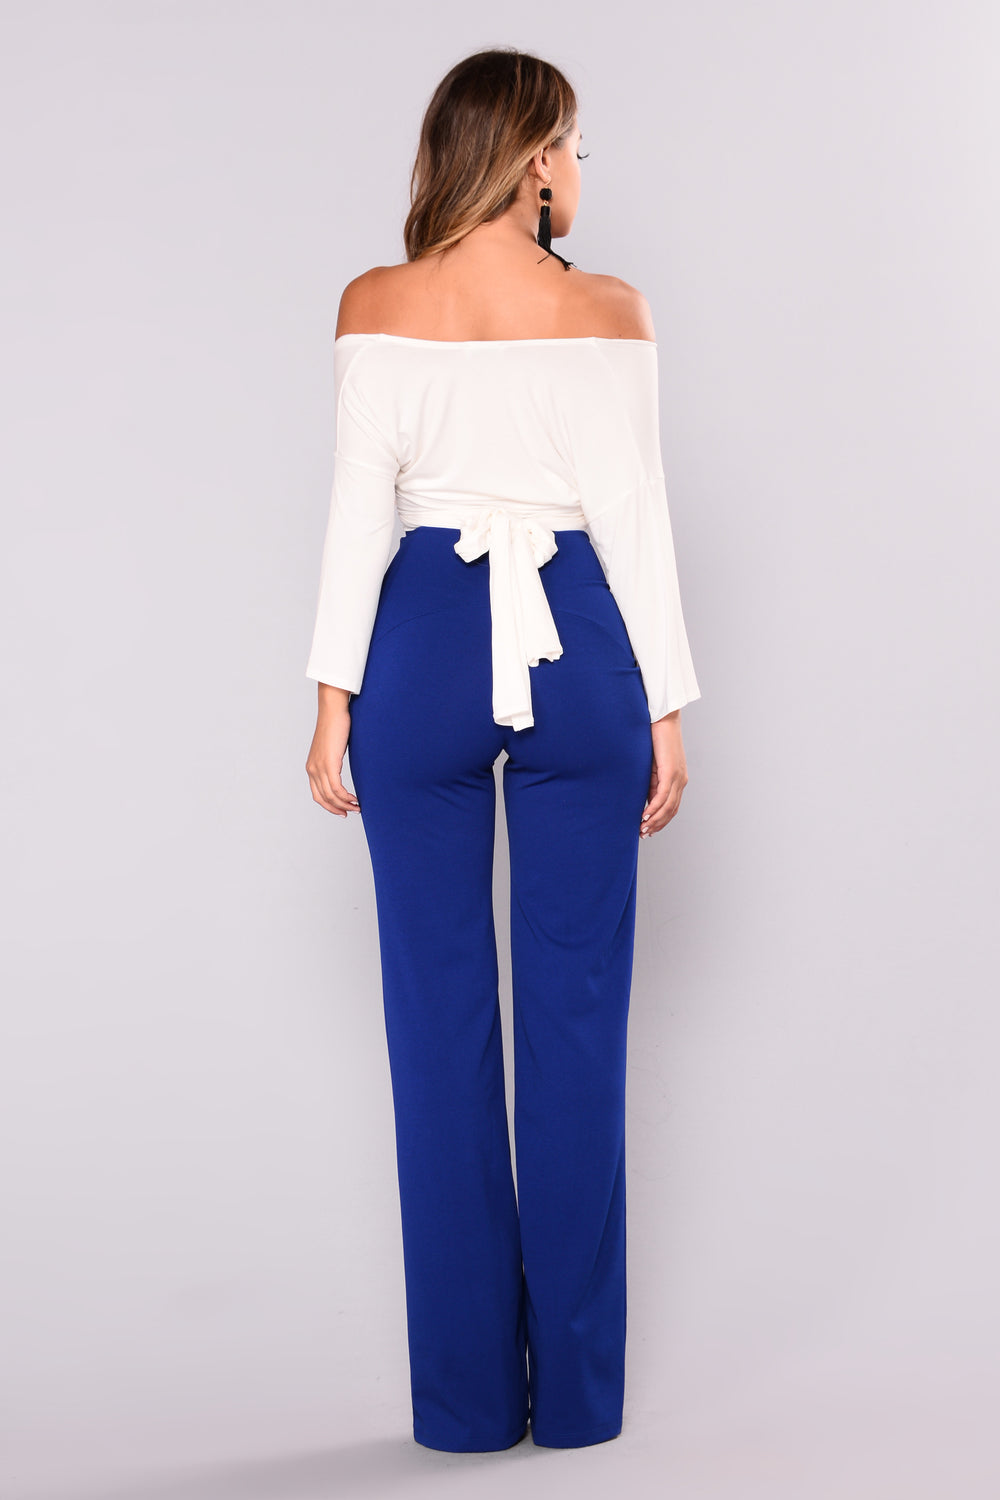 Kira Wide Leg Pants - Royal